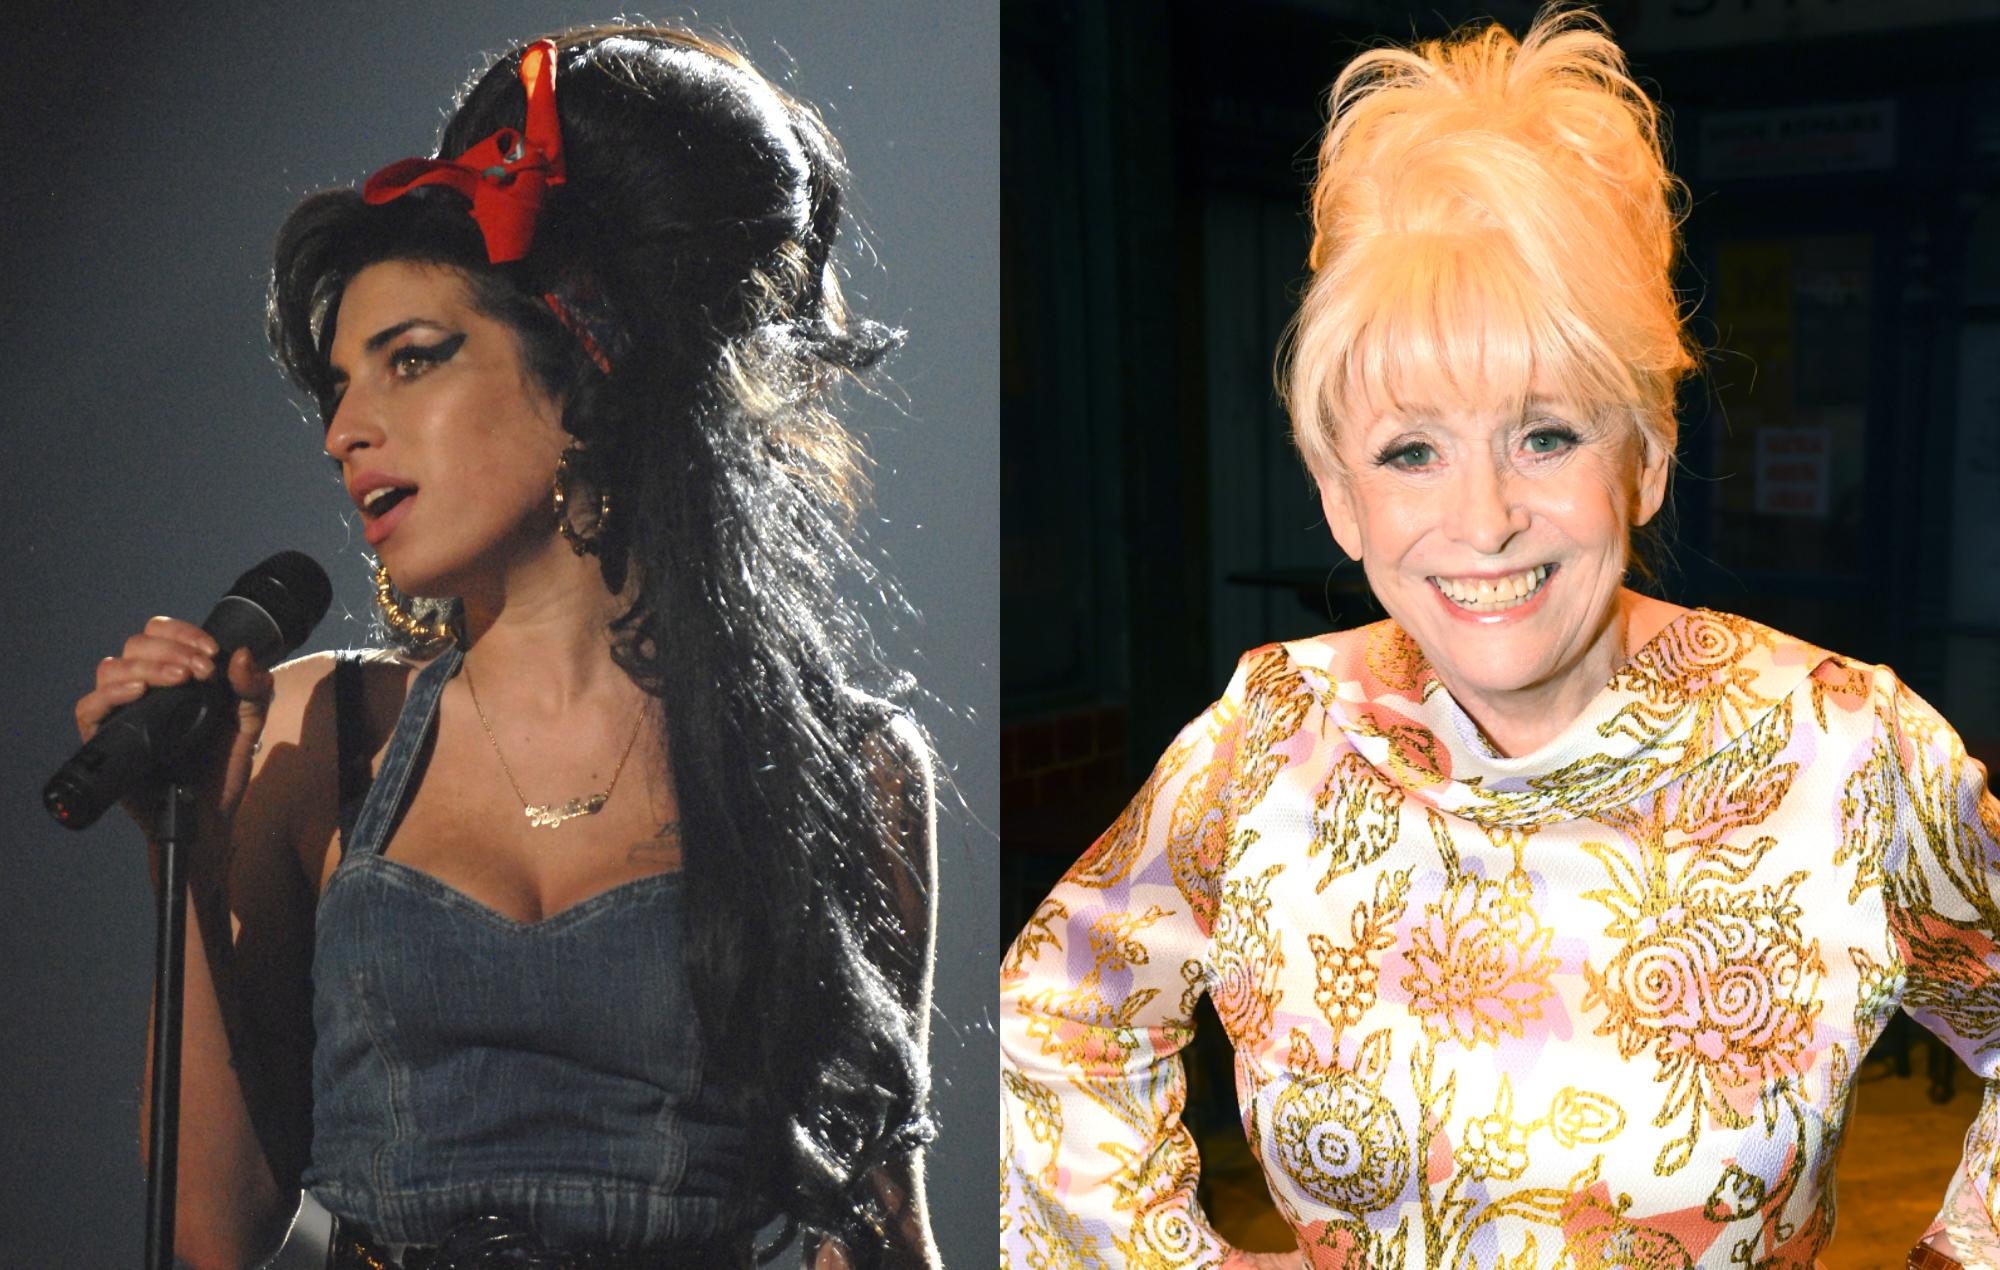 Amy Winehouse And Barbara Windsor Used To Act Out Old Eastenders Scenes Claims Friend